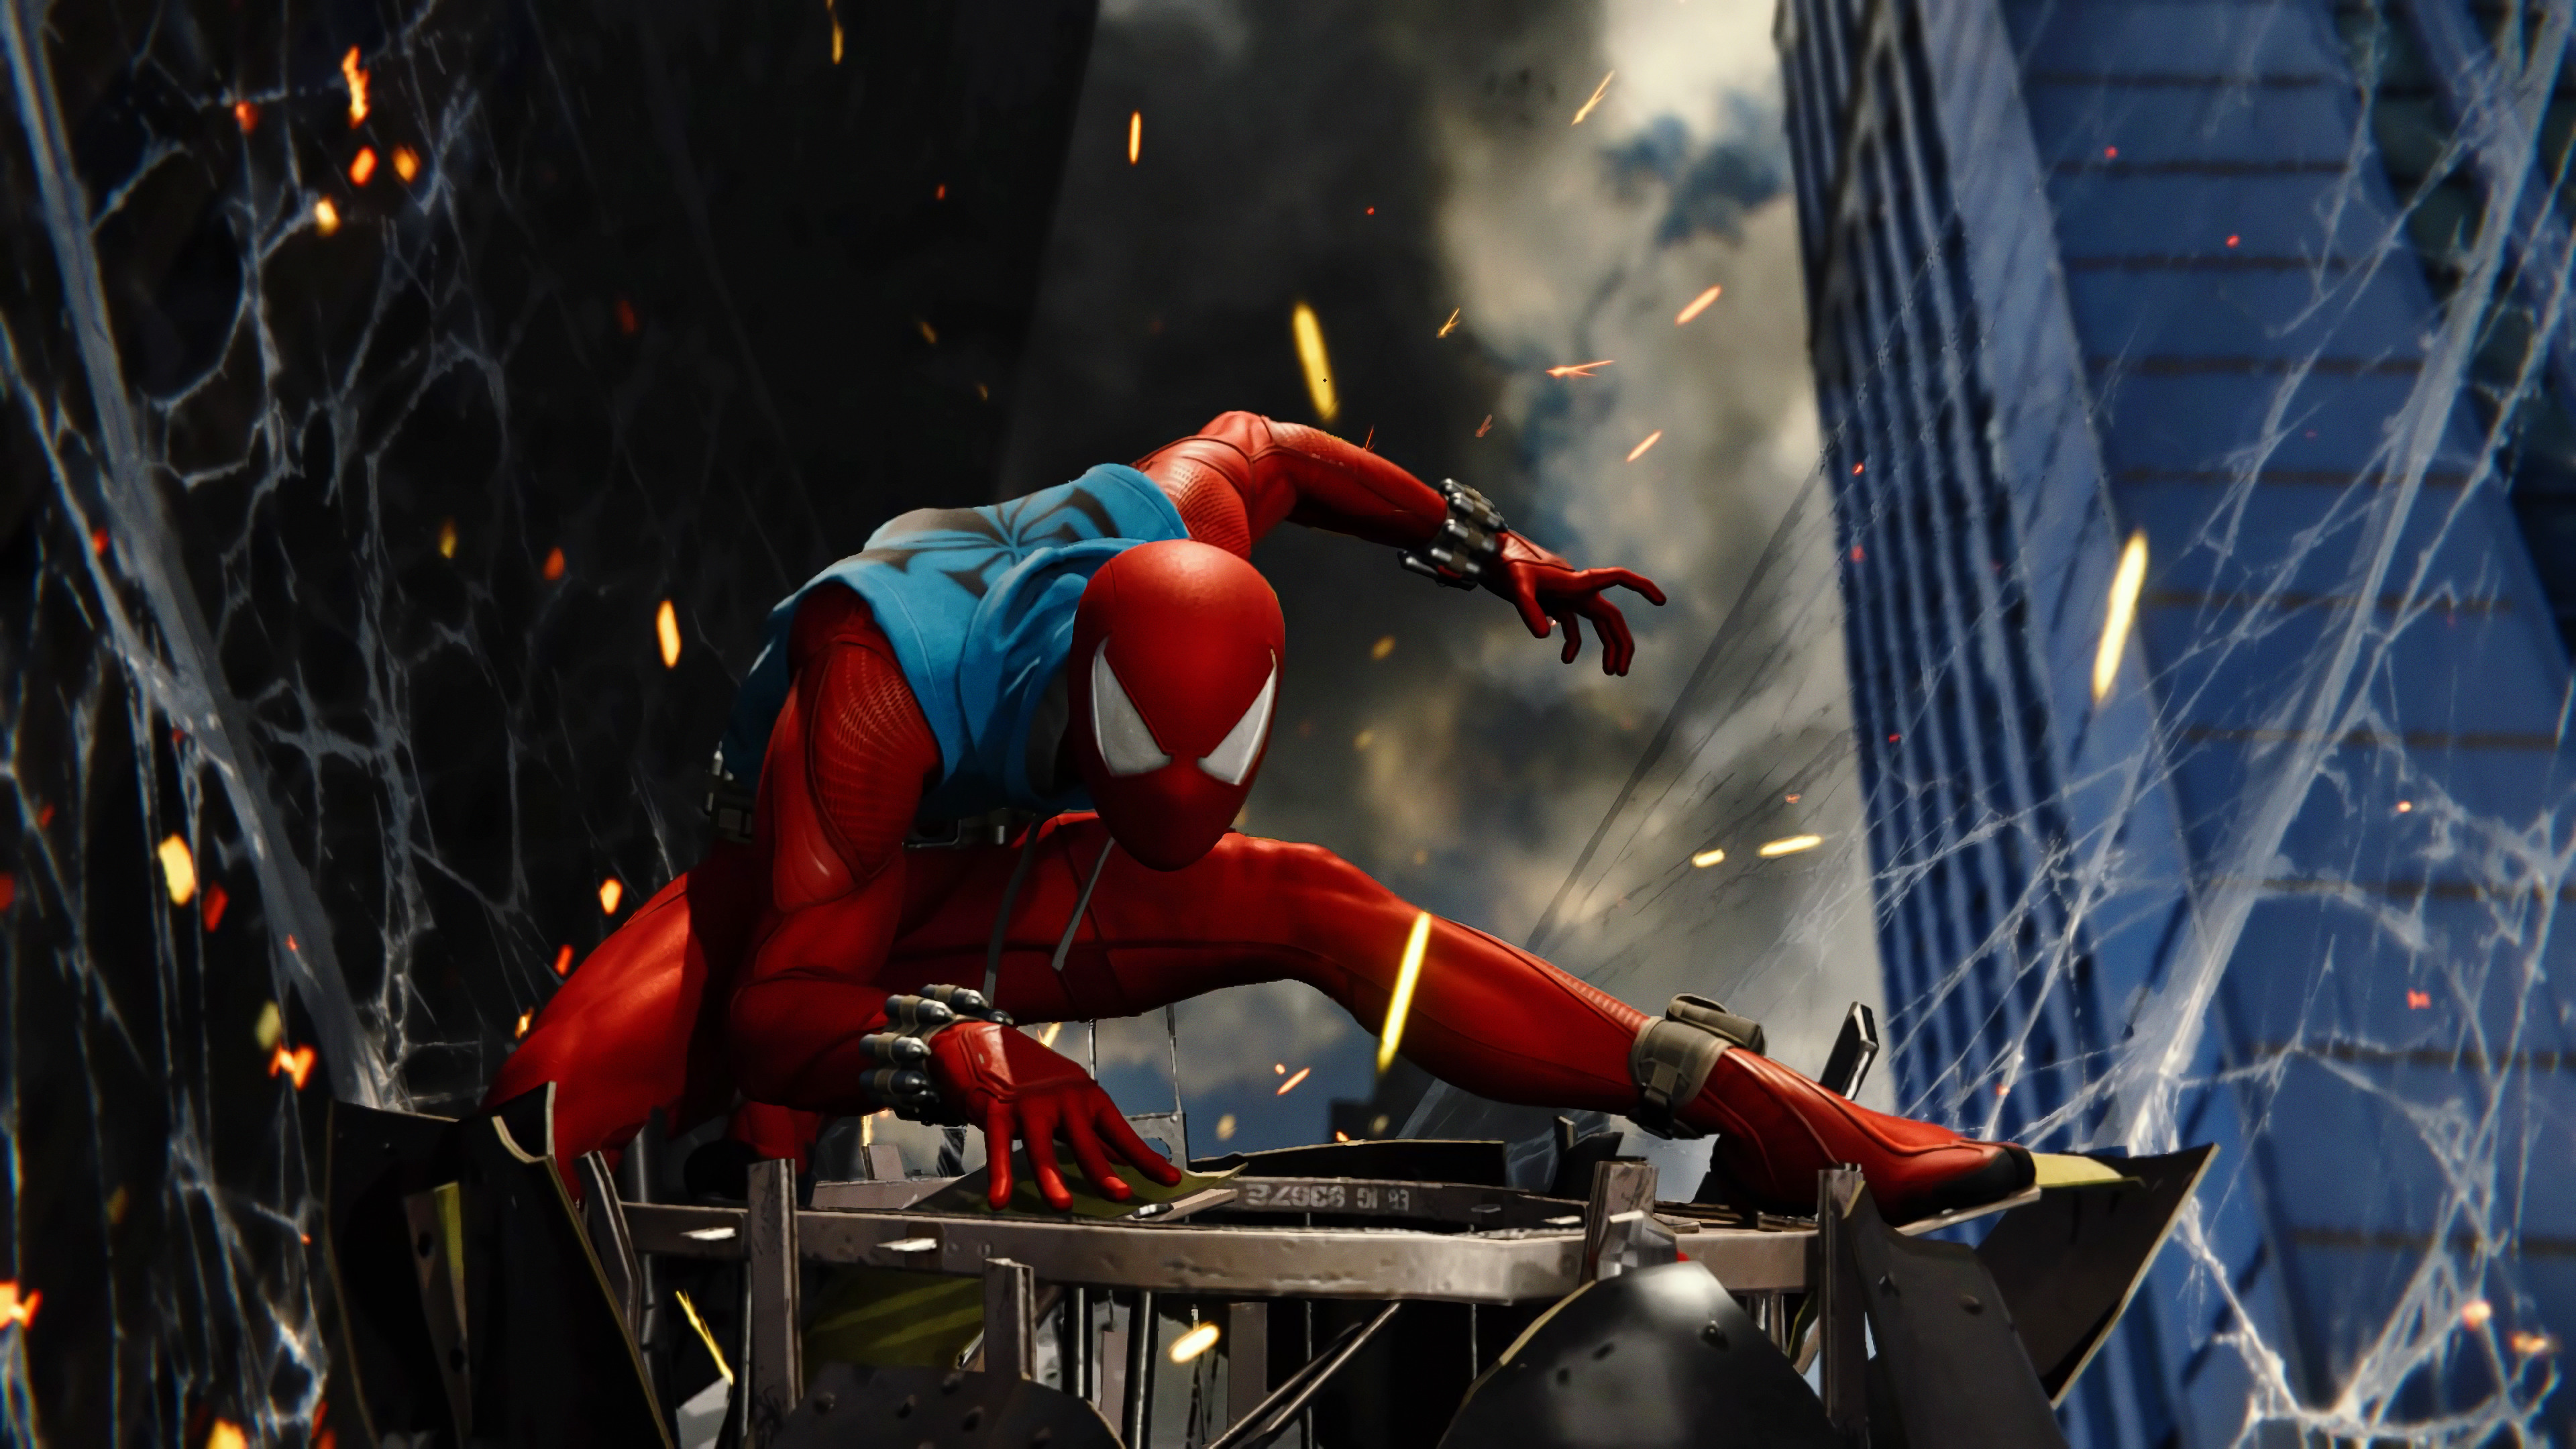 scarlet spider ps4 game 4k 1537692372 - Scarlet Spider Ps4 Game 4k - spiderman ps4 wallpapers, scarlet spider wallpapers, ps4 games wallpapers, hd-wallpapers, games wallpapers, 4k-wallpapers, 2018 games wallpapers